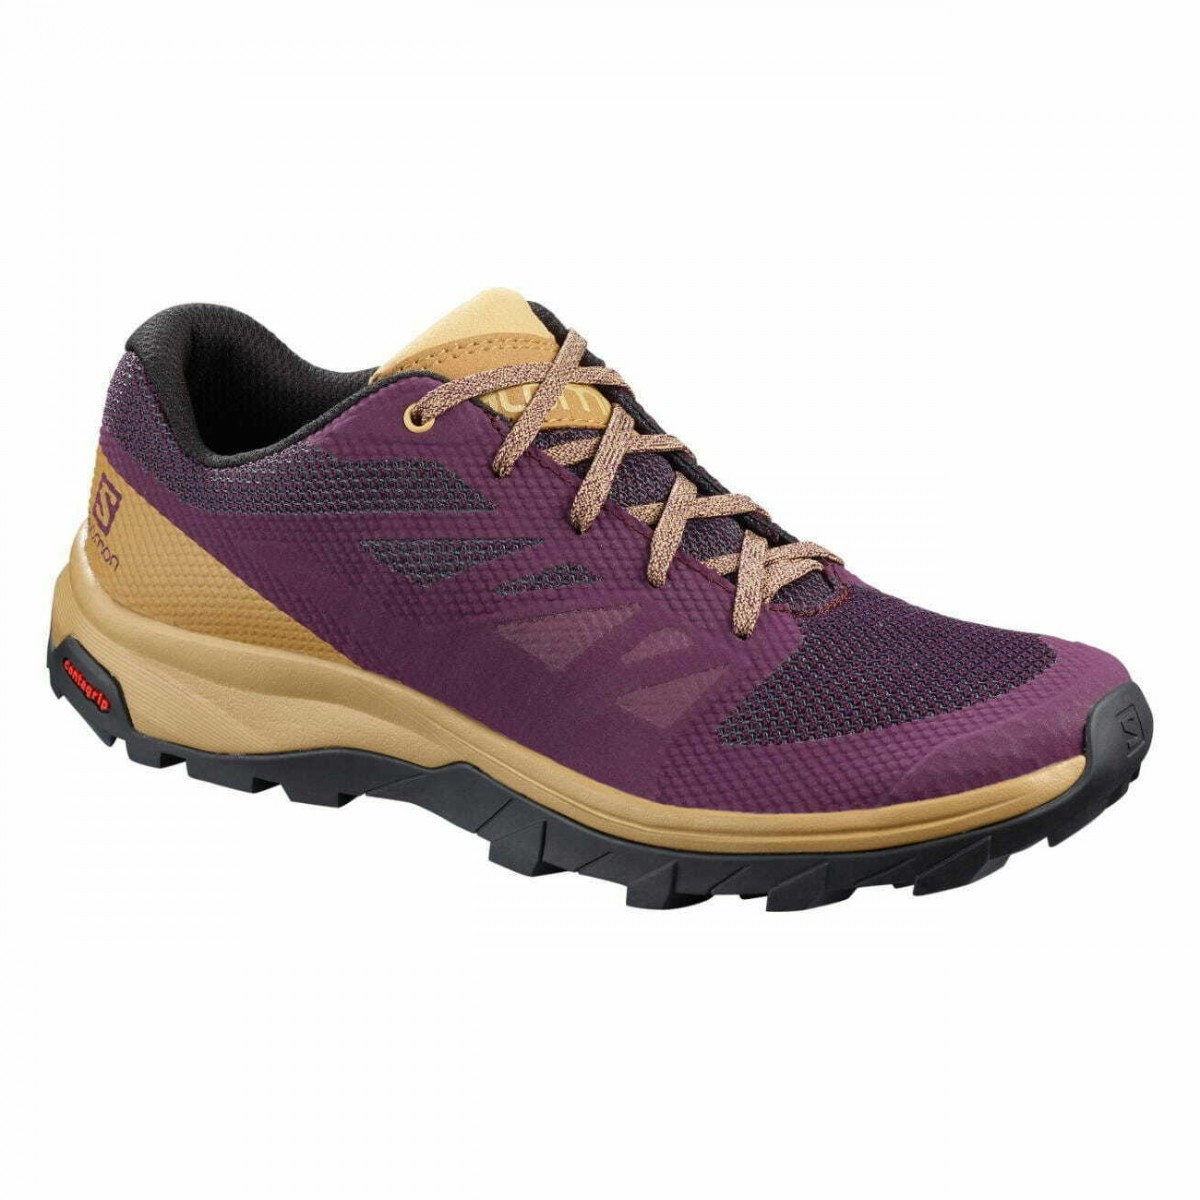 Pantofi damă Outdoor Salomon OUTline W Mov -1